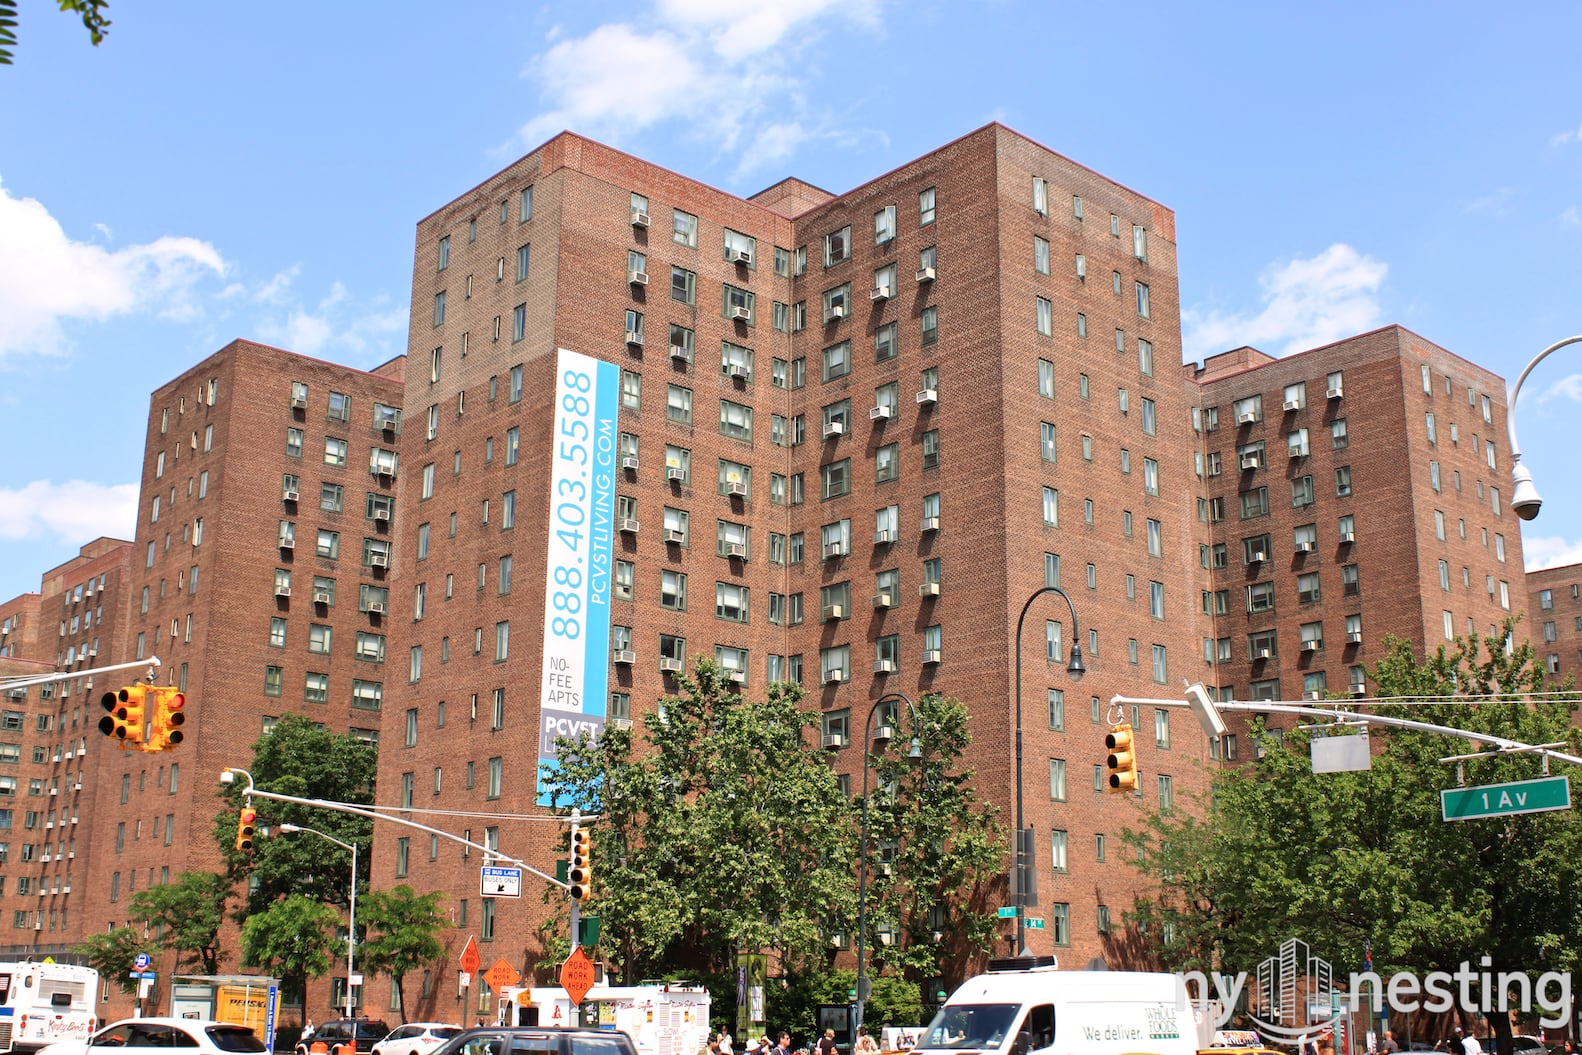 Stuyvesant town 330 1st ave nyc manhattan scout for Stuyvesant town nyc